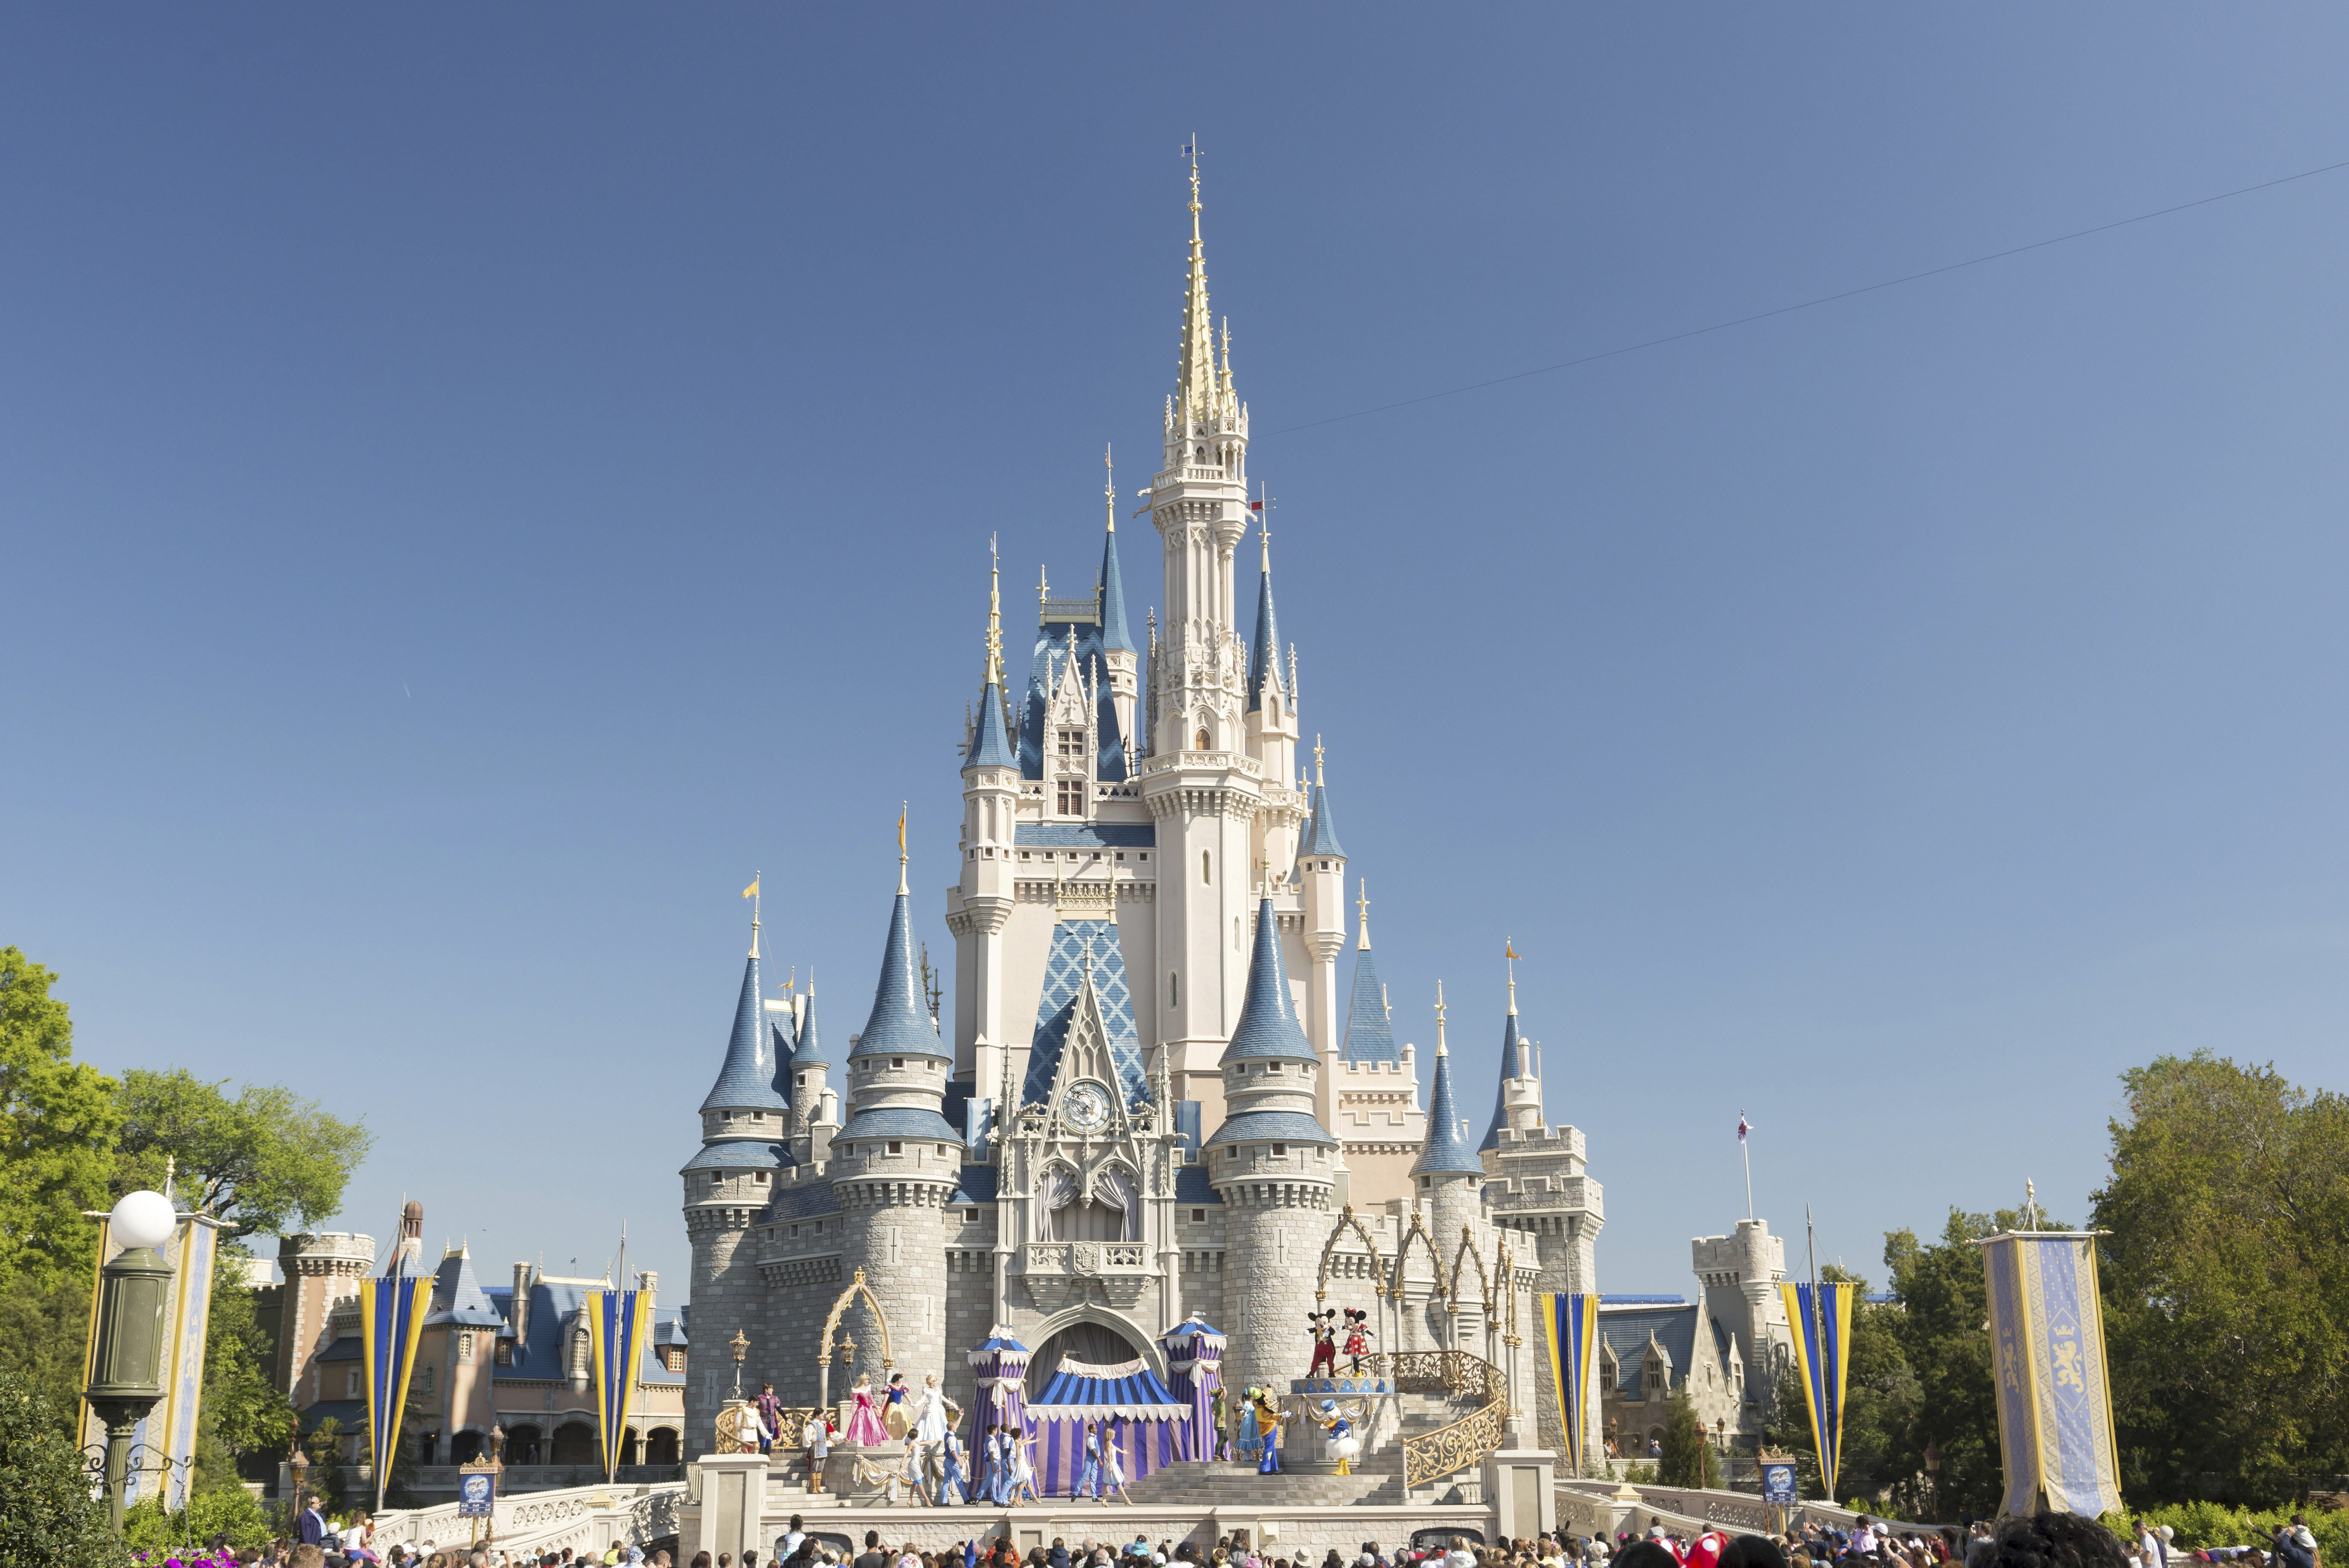 Mandatory Credit: Photo by imageBROKER/Shutterstock (3454621a) Cinderella Castle in the Magic Kingdom, Walt Disney World Resort VARIOUS